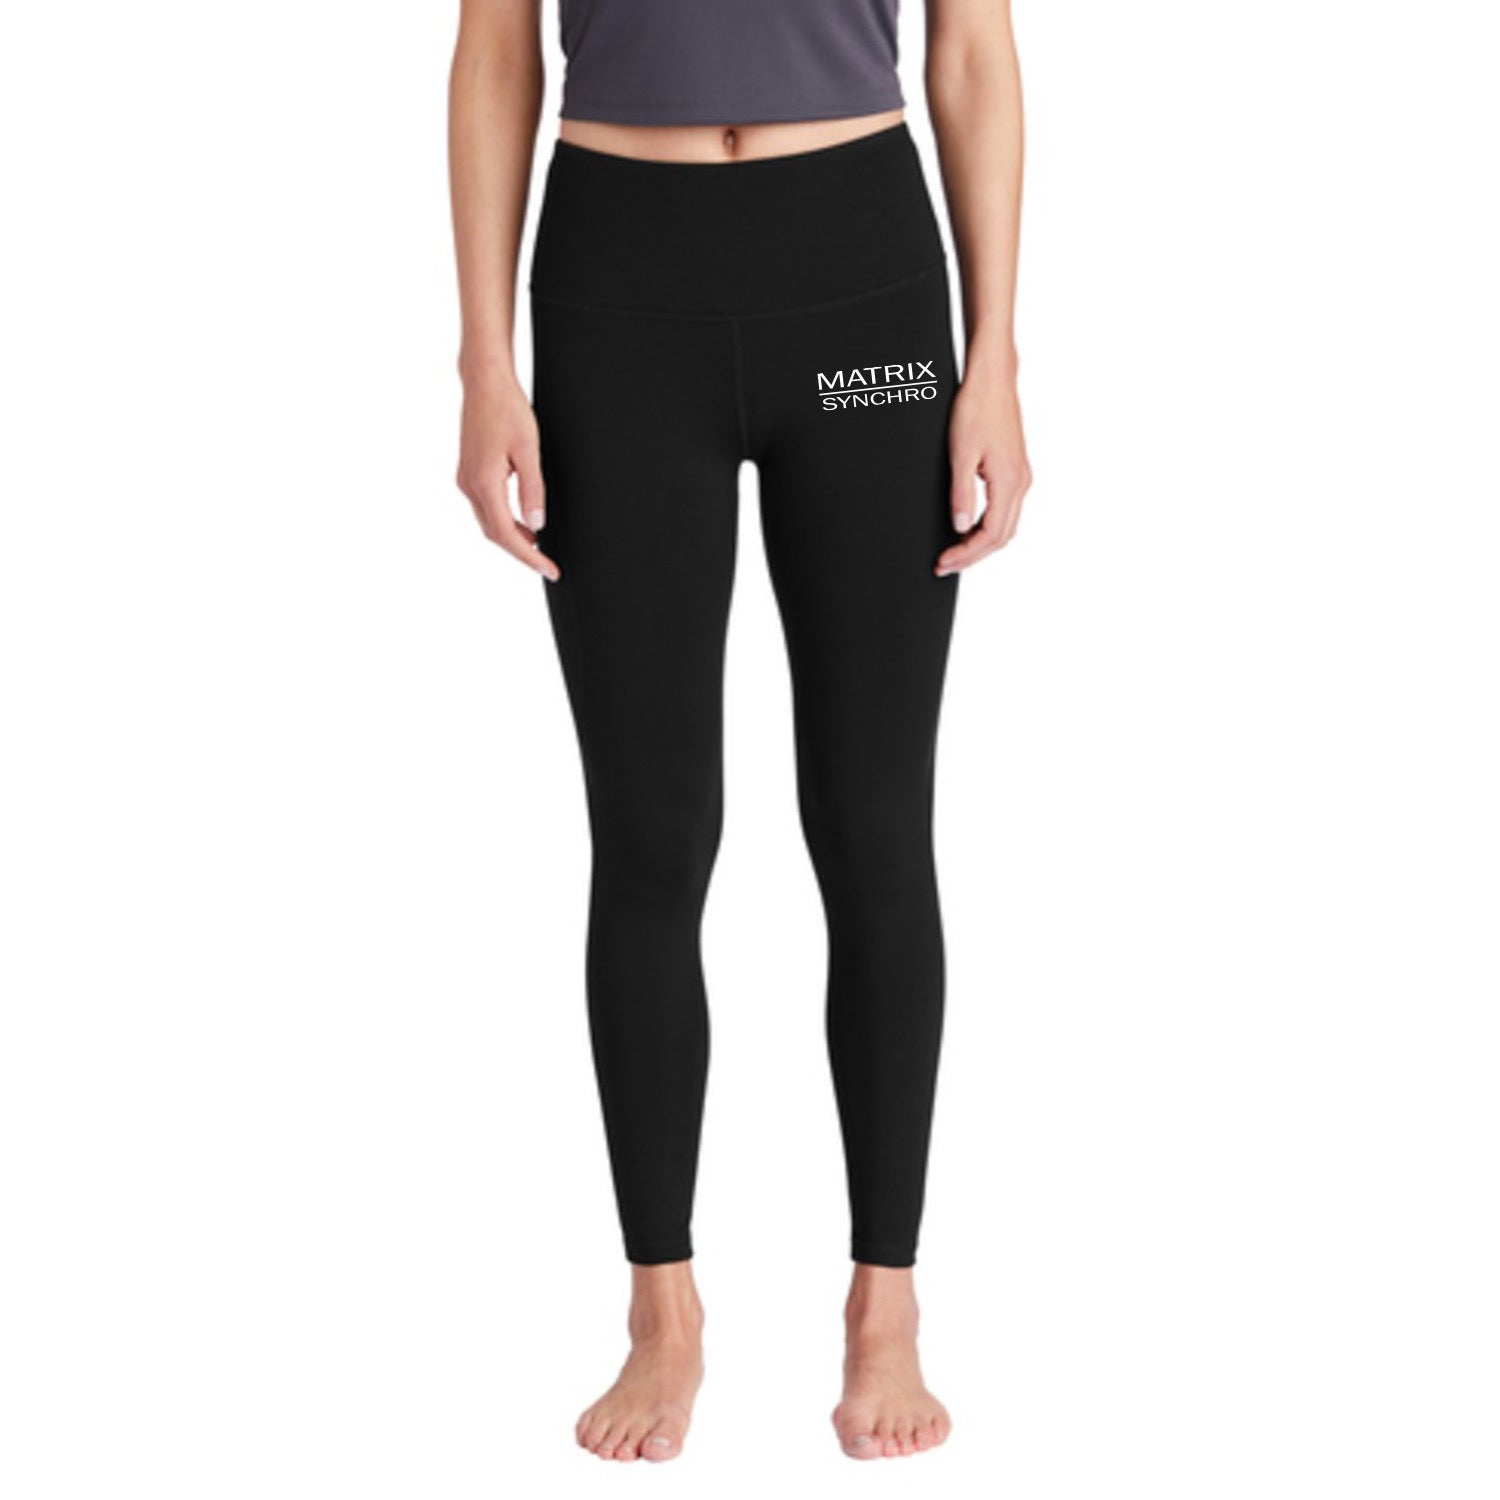 Matrix Synchro Sport-Tek ® Ladies High Rise 7/8 Legging